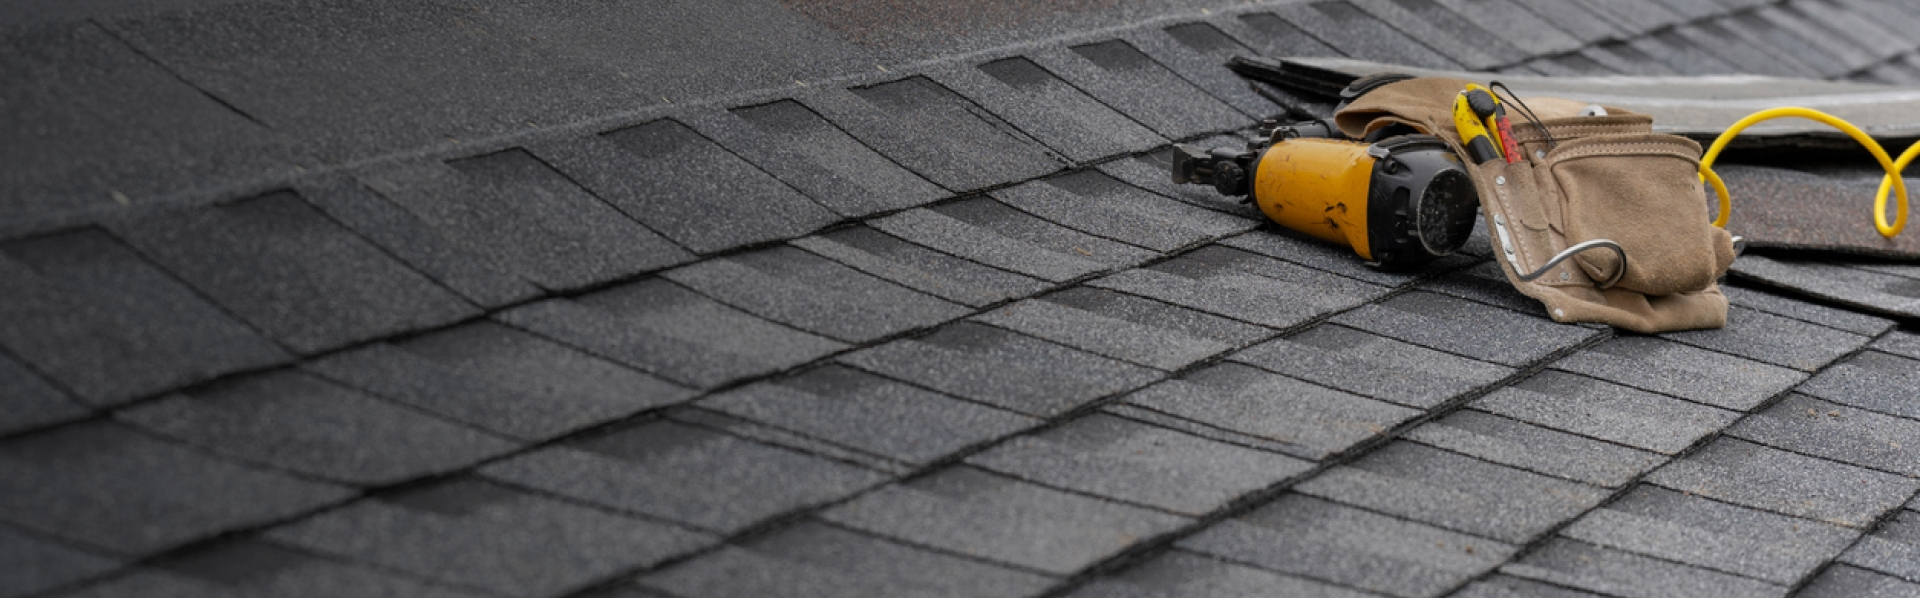 A well built asphalt roof with tools laying on it.